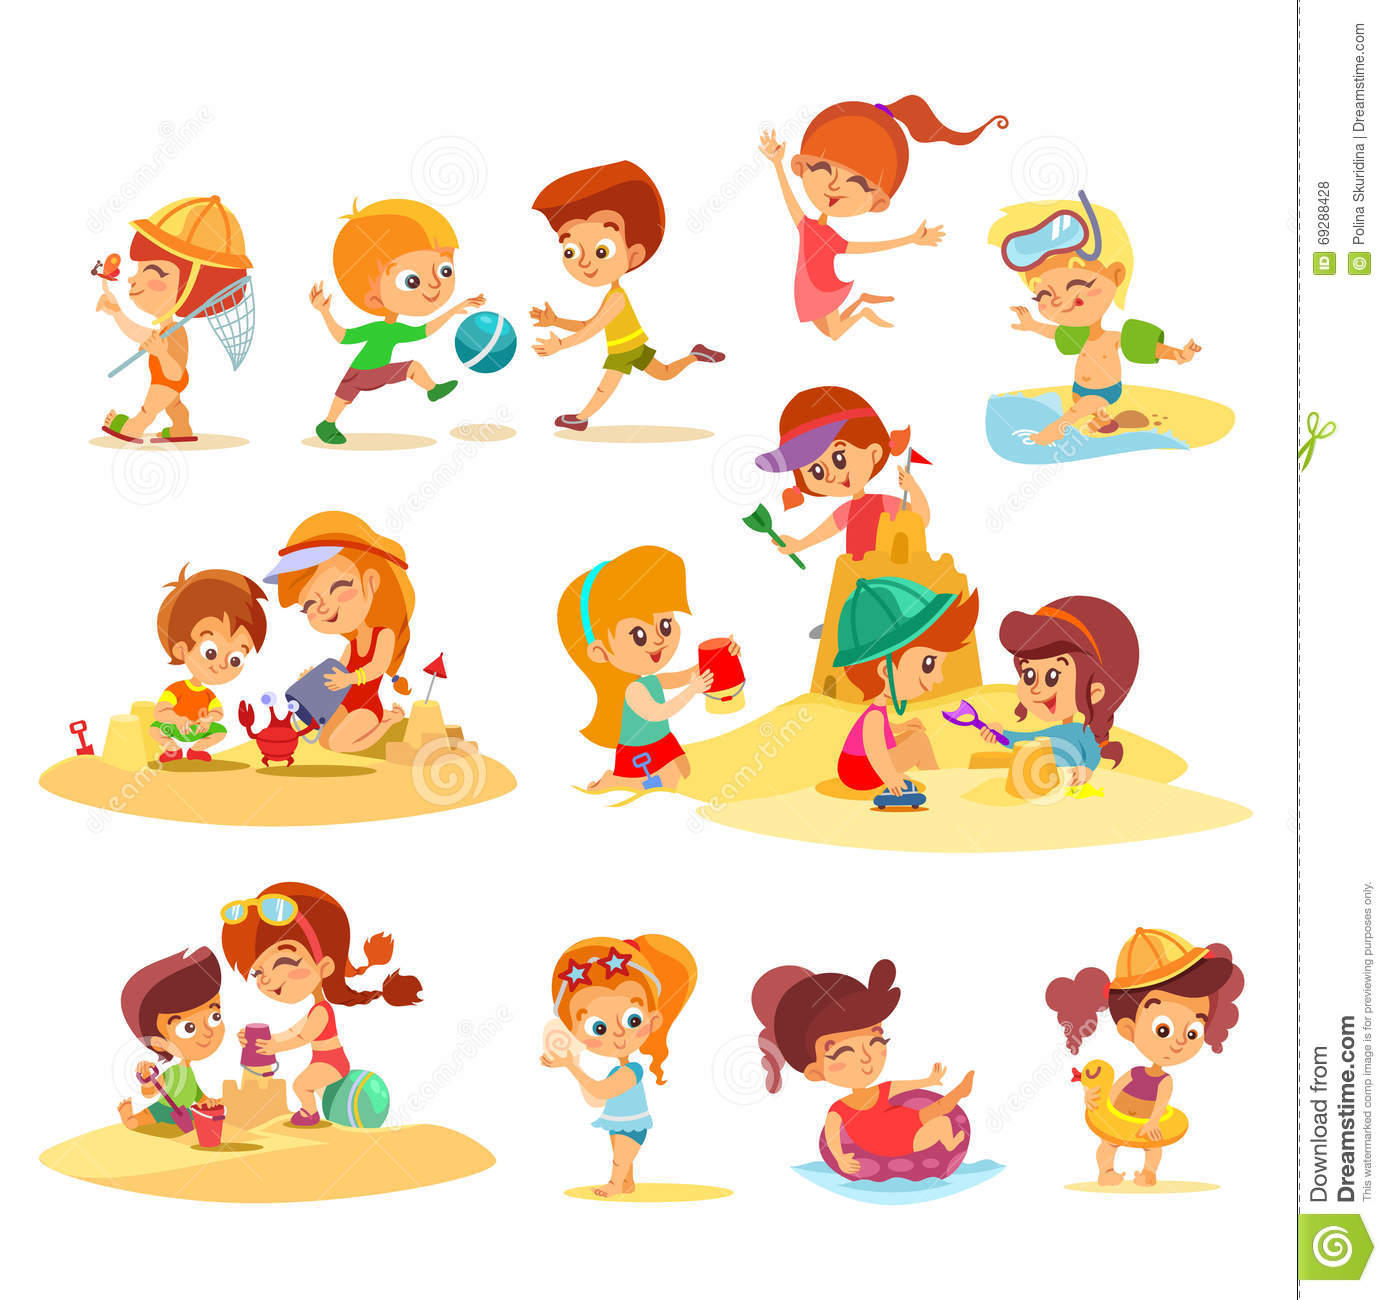 Little Kids Playing Together On Beach In Groups. Stock ...